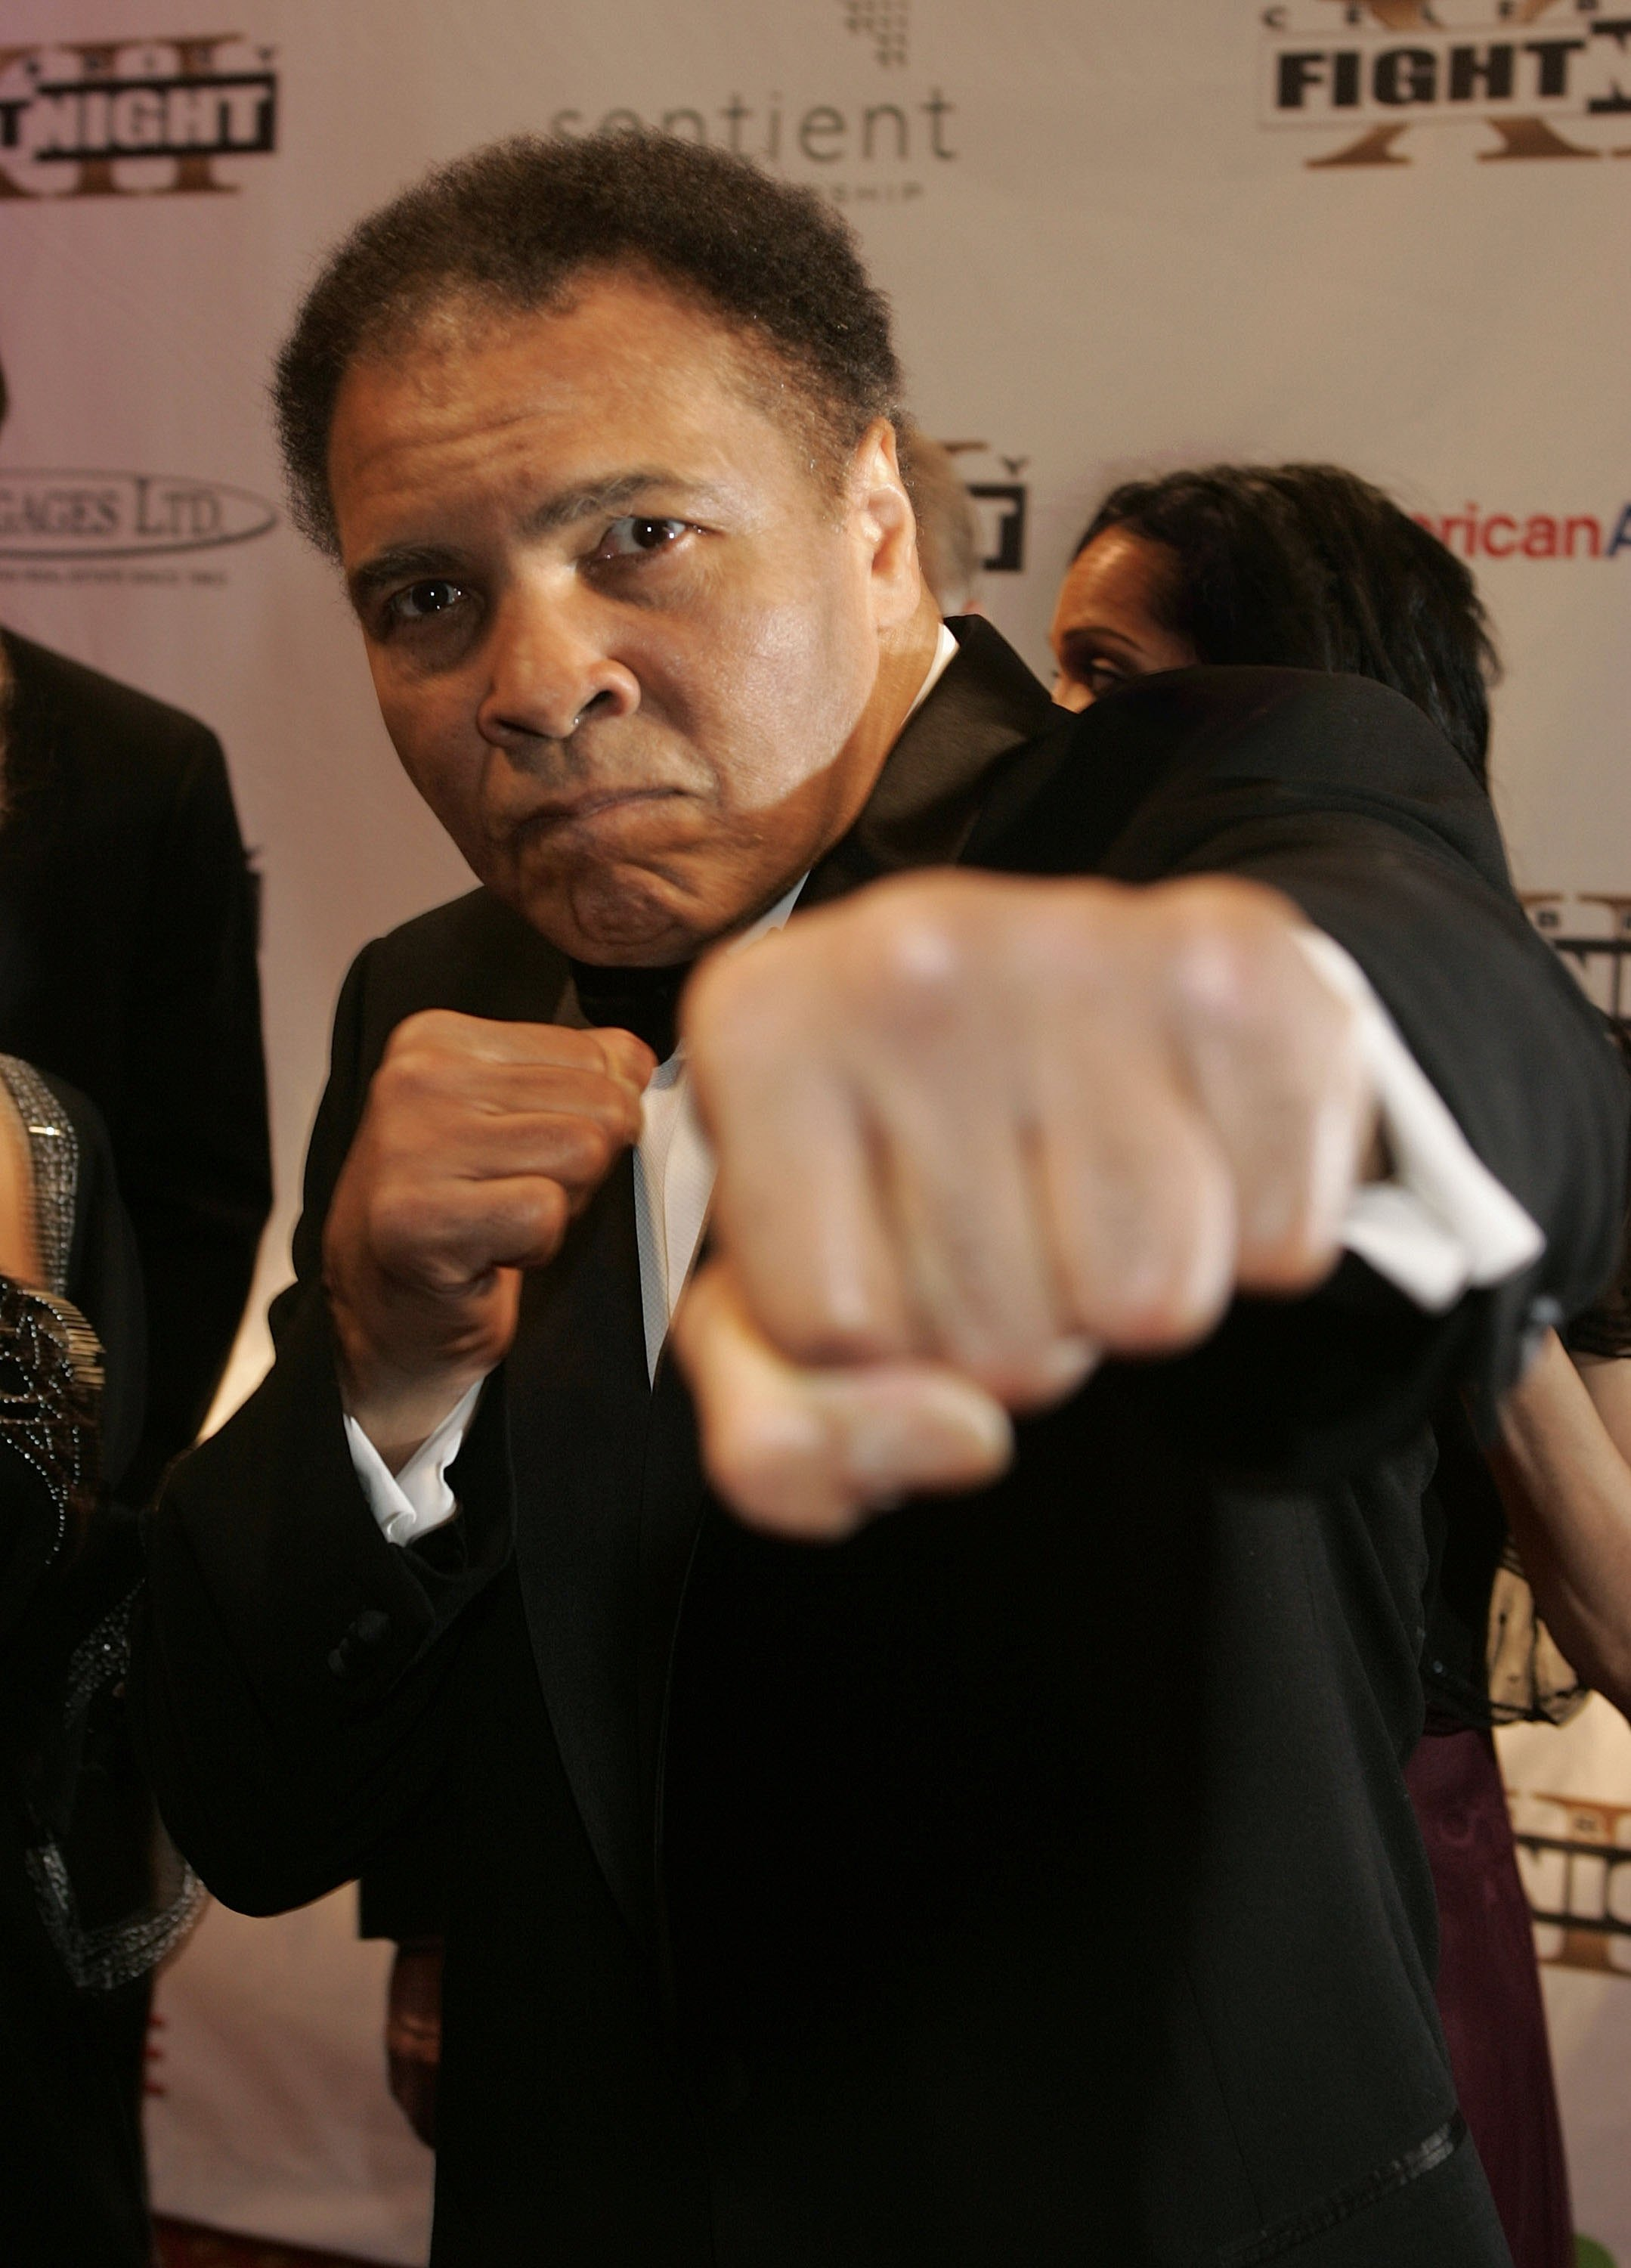 PHOENIX, AZ - MARCH 18: Muhammad Ali throws a punch at the camera on the red carpet for Celebrity Fight Night XII on March 18, 2006 at the JW Marriott Desert Ridge Resort & Spa in Phoenix, Arizona.  (Photo by Will Powers/Getty Images)